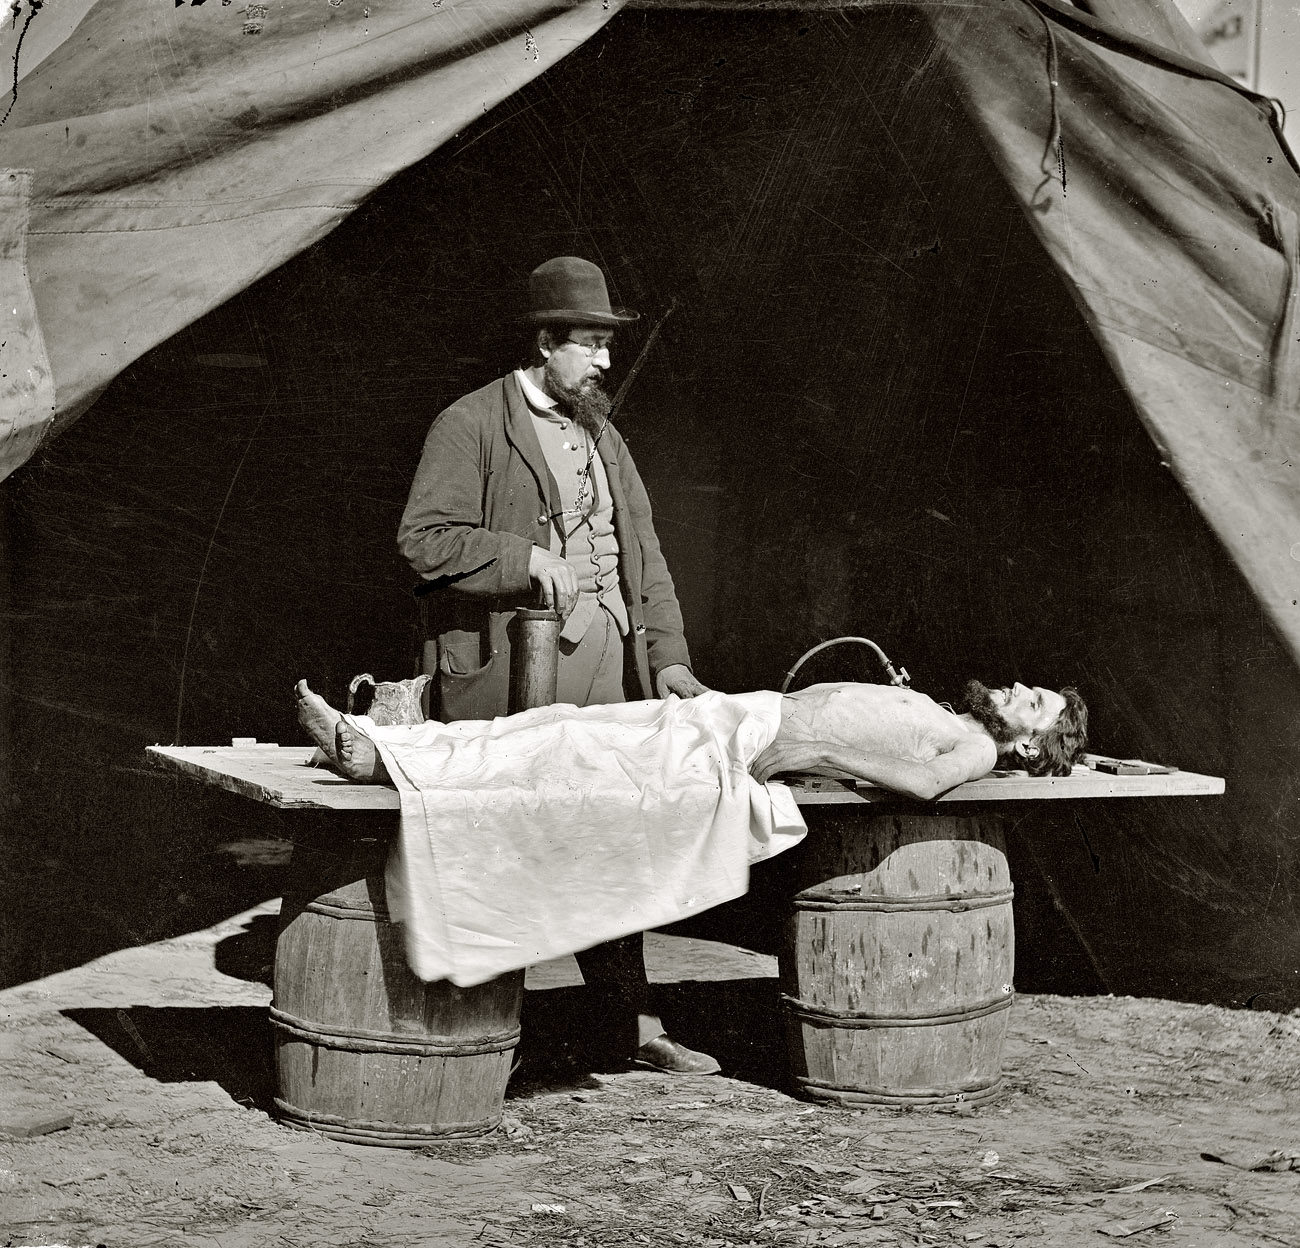 Circa 1861-1865.  Unknown location. Embalming surgeon at work on soldier's body. From photographs of artillery, place and date unknown.